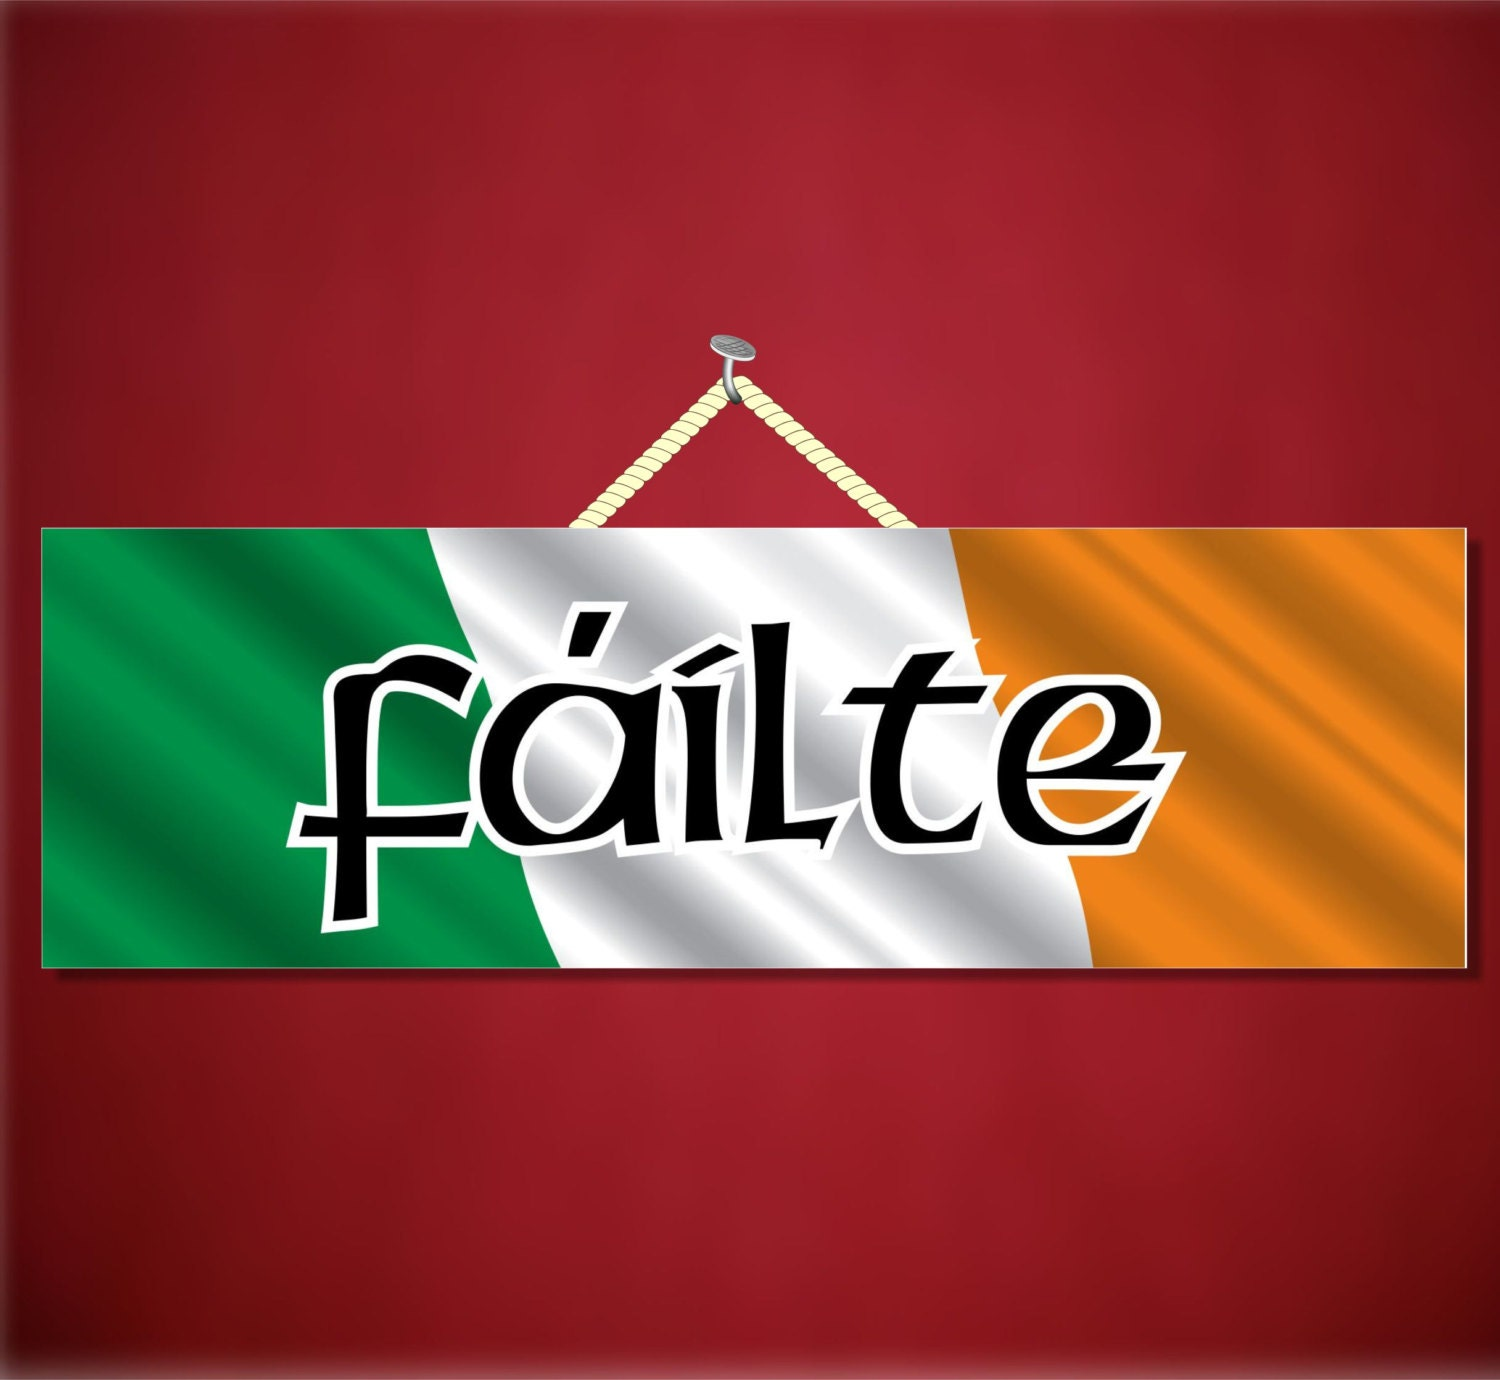 Failte Welcome Novelty Sign Irish Greeting Sign Gaelic Sign